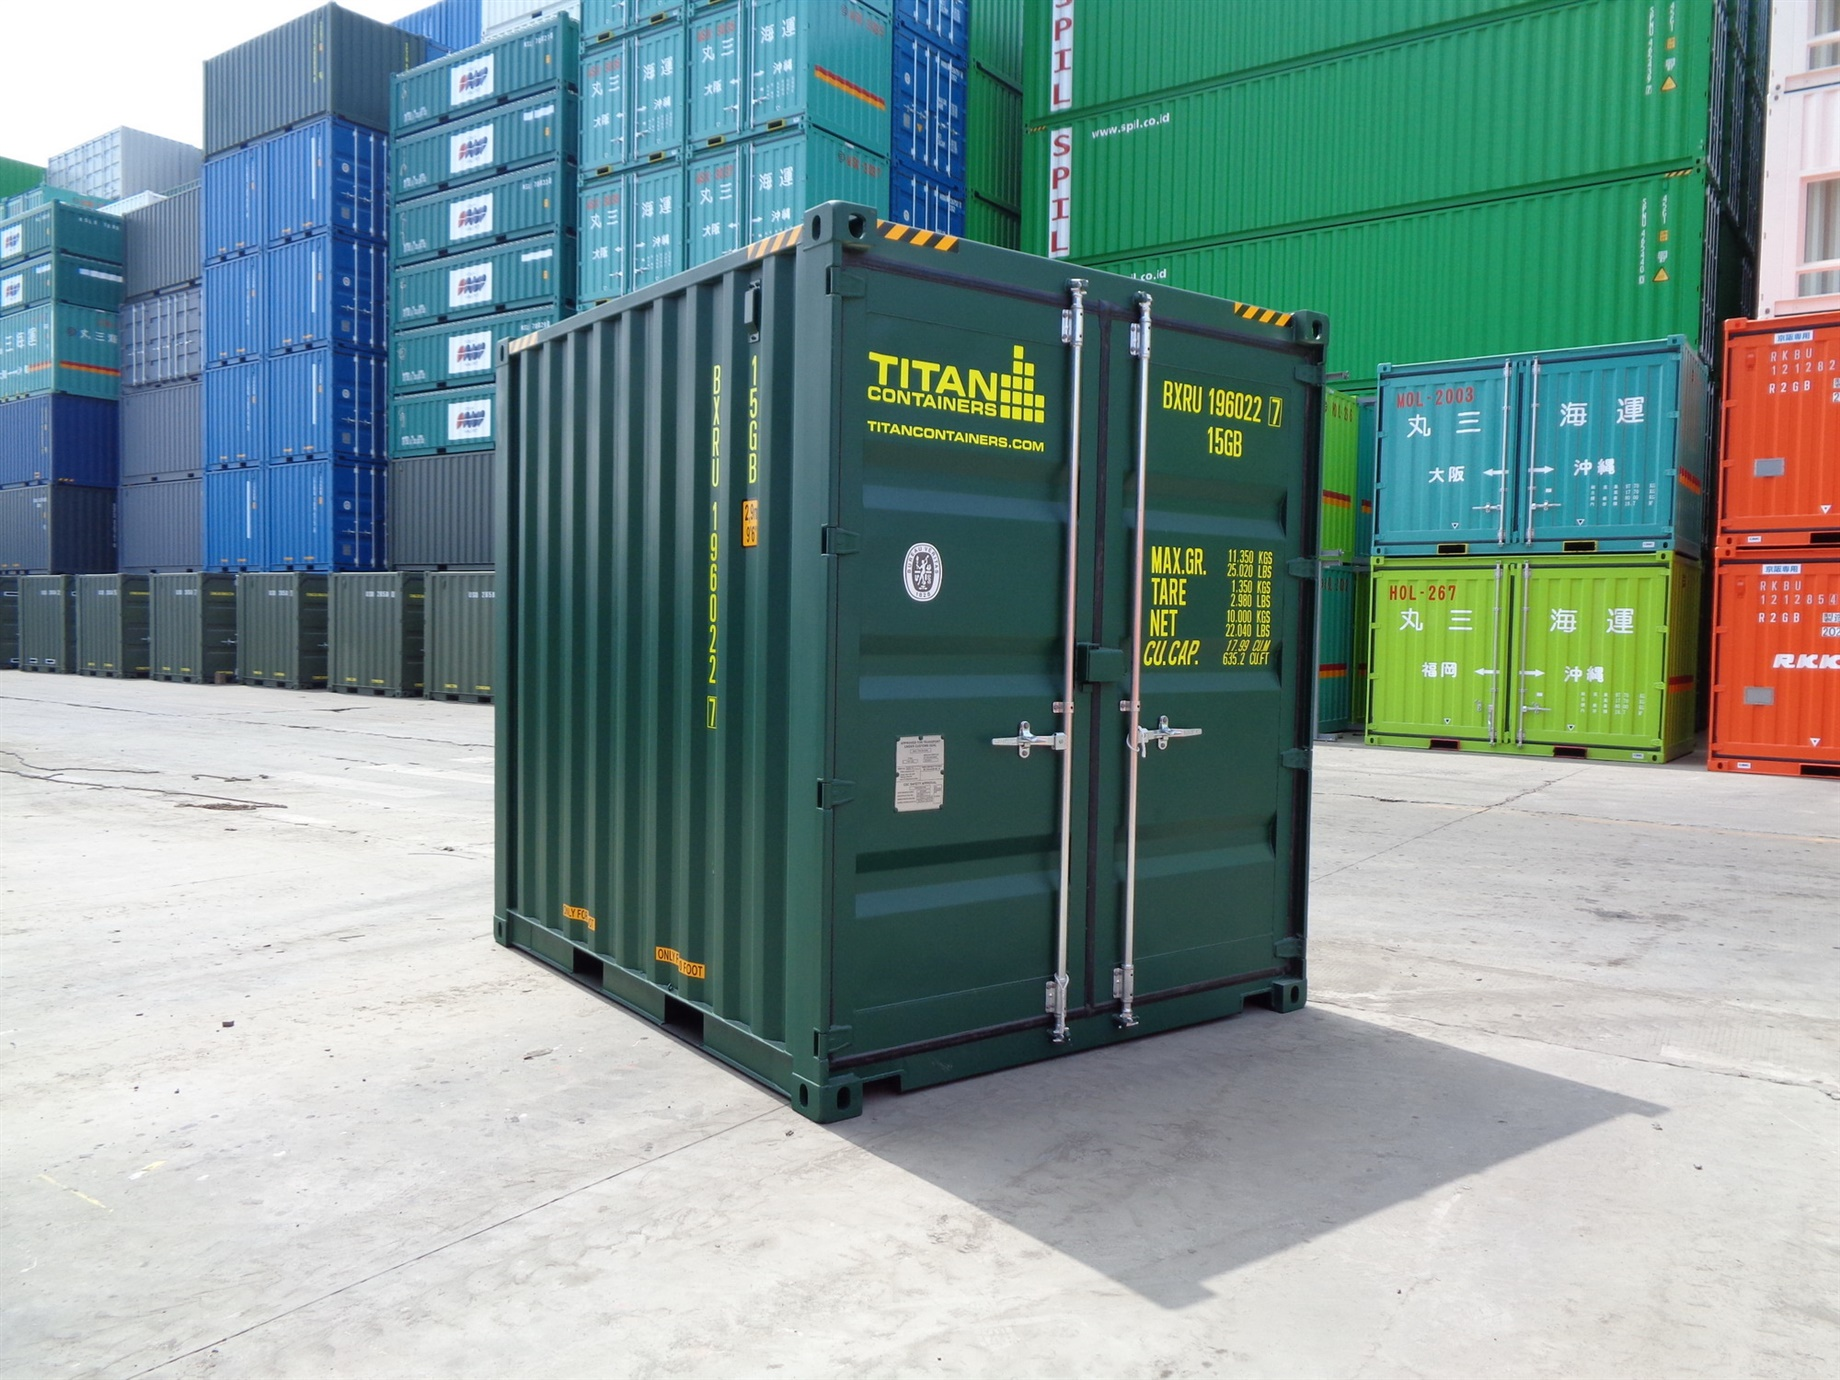 6 8 10 green HC High Cube doors closed foot storage container TITAN Shiipping Containers